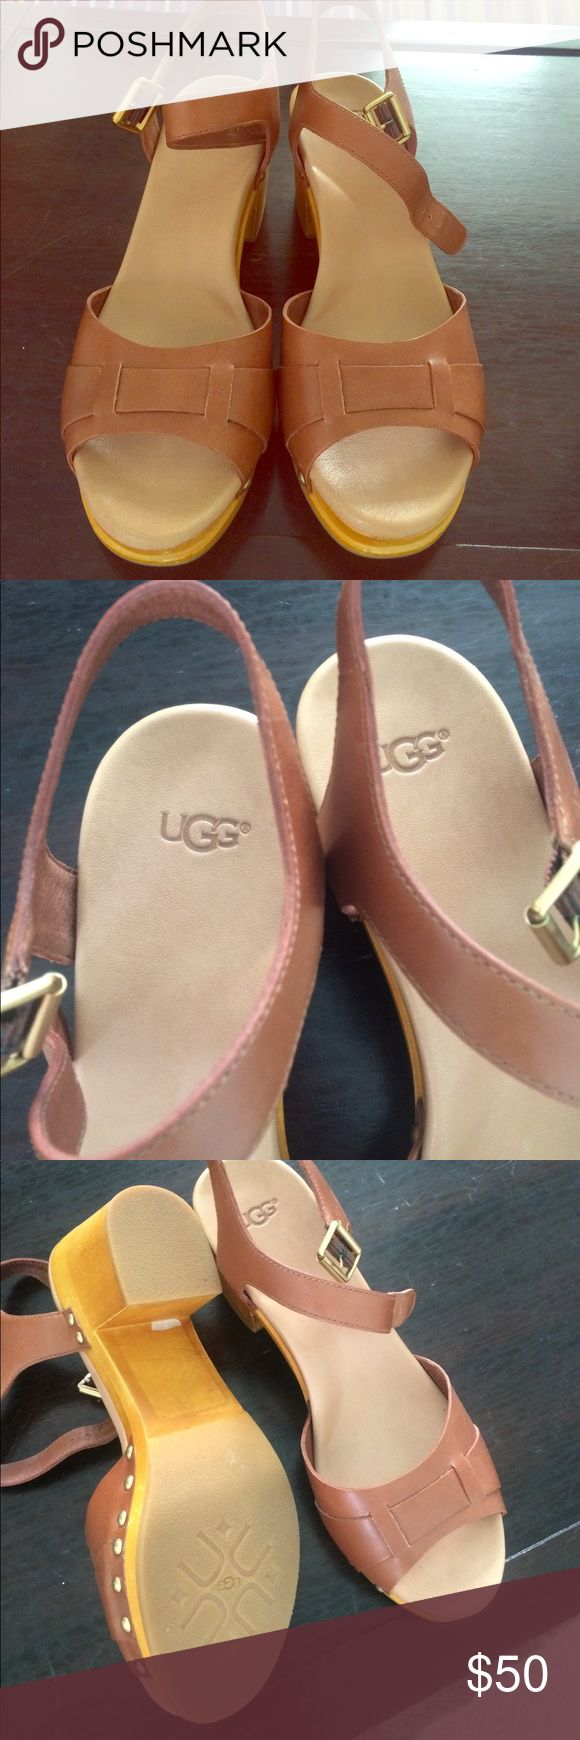 UGG Janie tan leather sandals sz 9 worn once Barely worn, like new UGG Janie sandals with short wooden heel - would be very comfortable for walking if I could squeeze my swollen feet in them - they are a bit narrow so best for someone with slender feet. Retro strappy super cute! UGG Shoes Sandals